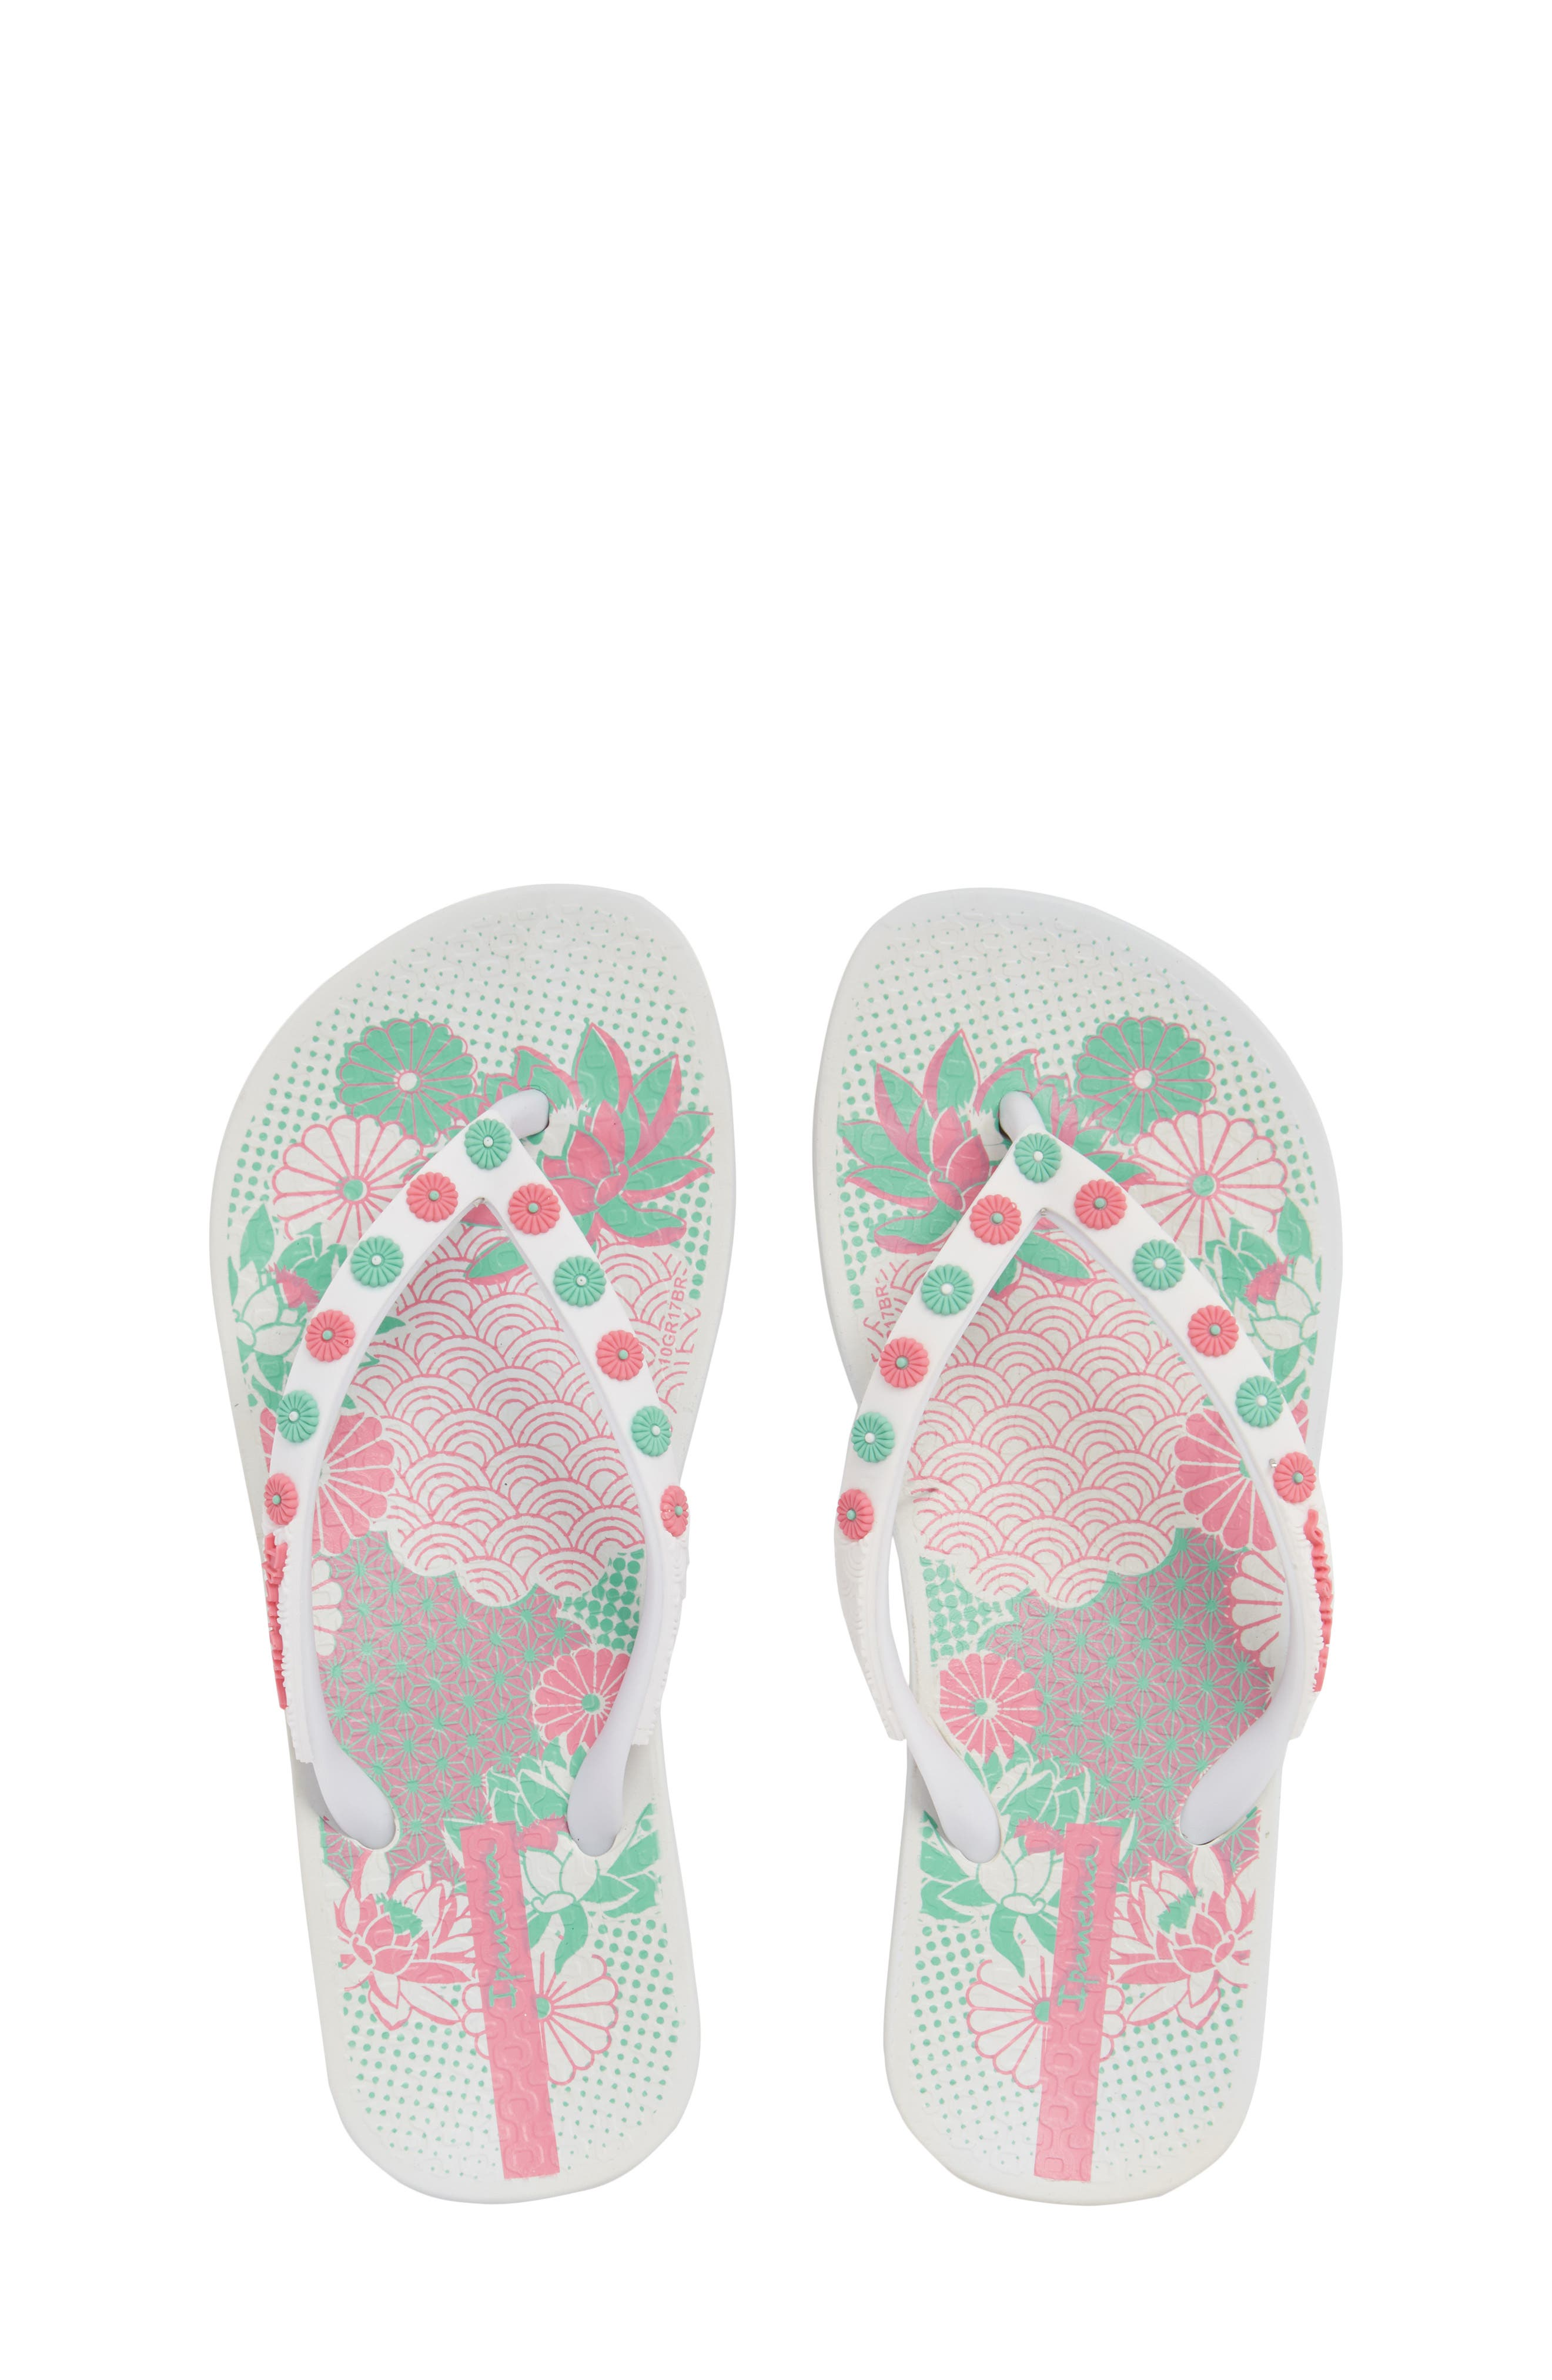 Ana Lovely Flip Flop,                             Main thumbnail 1, color,                             100